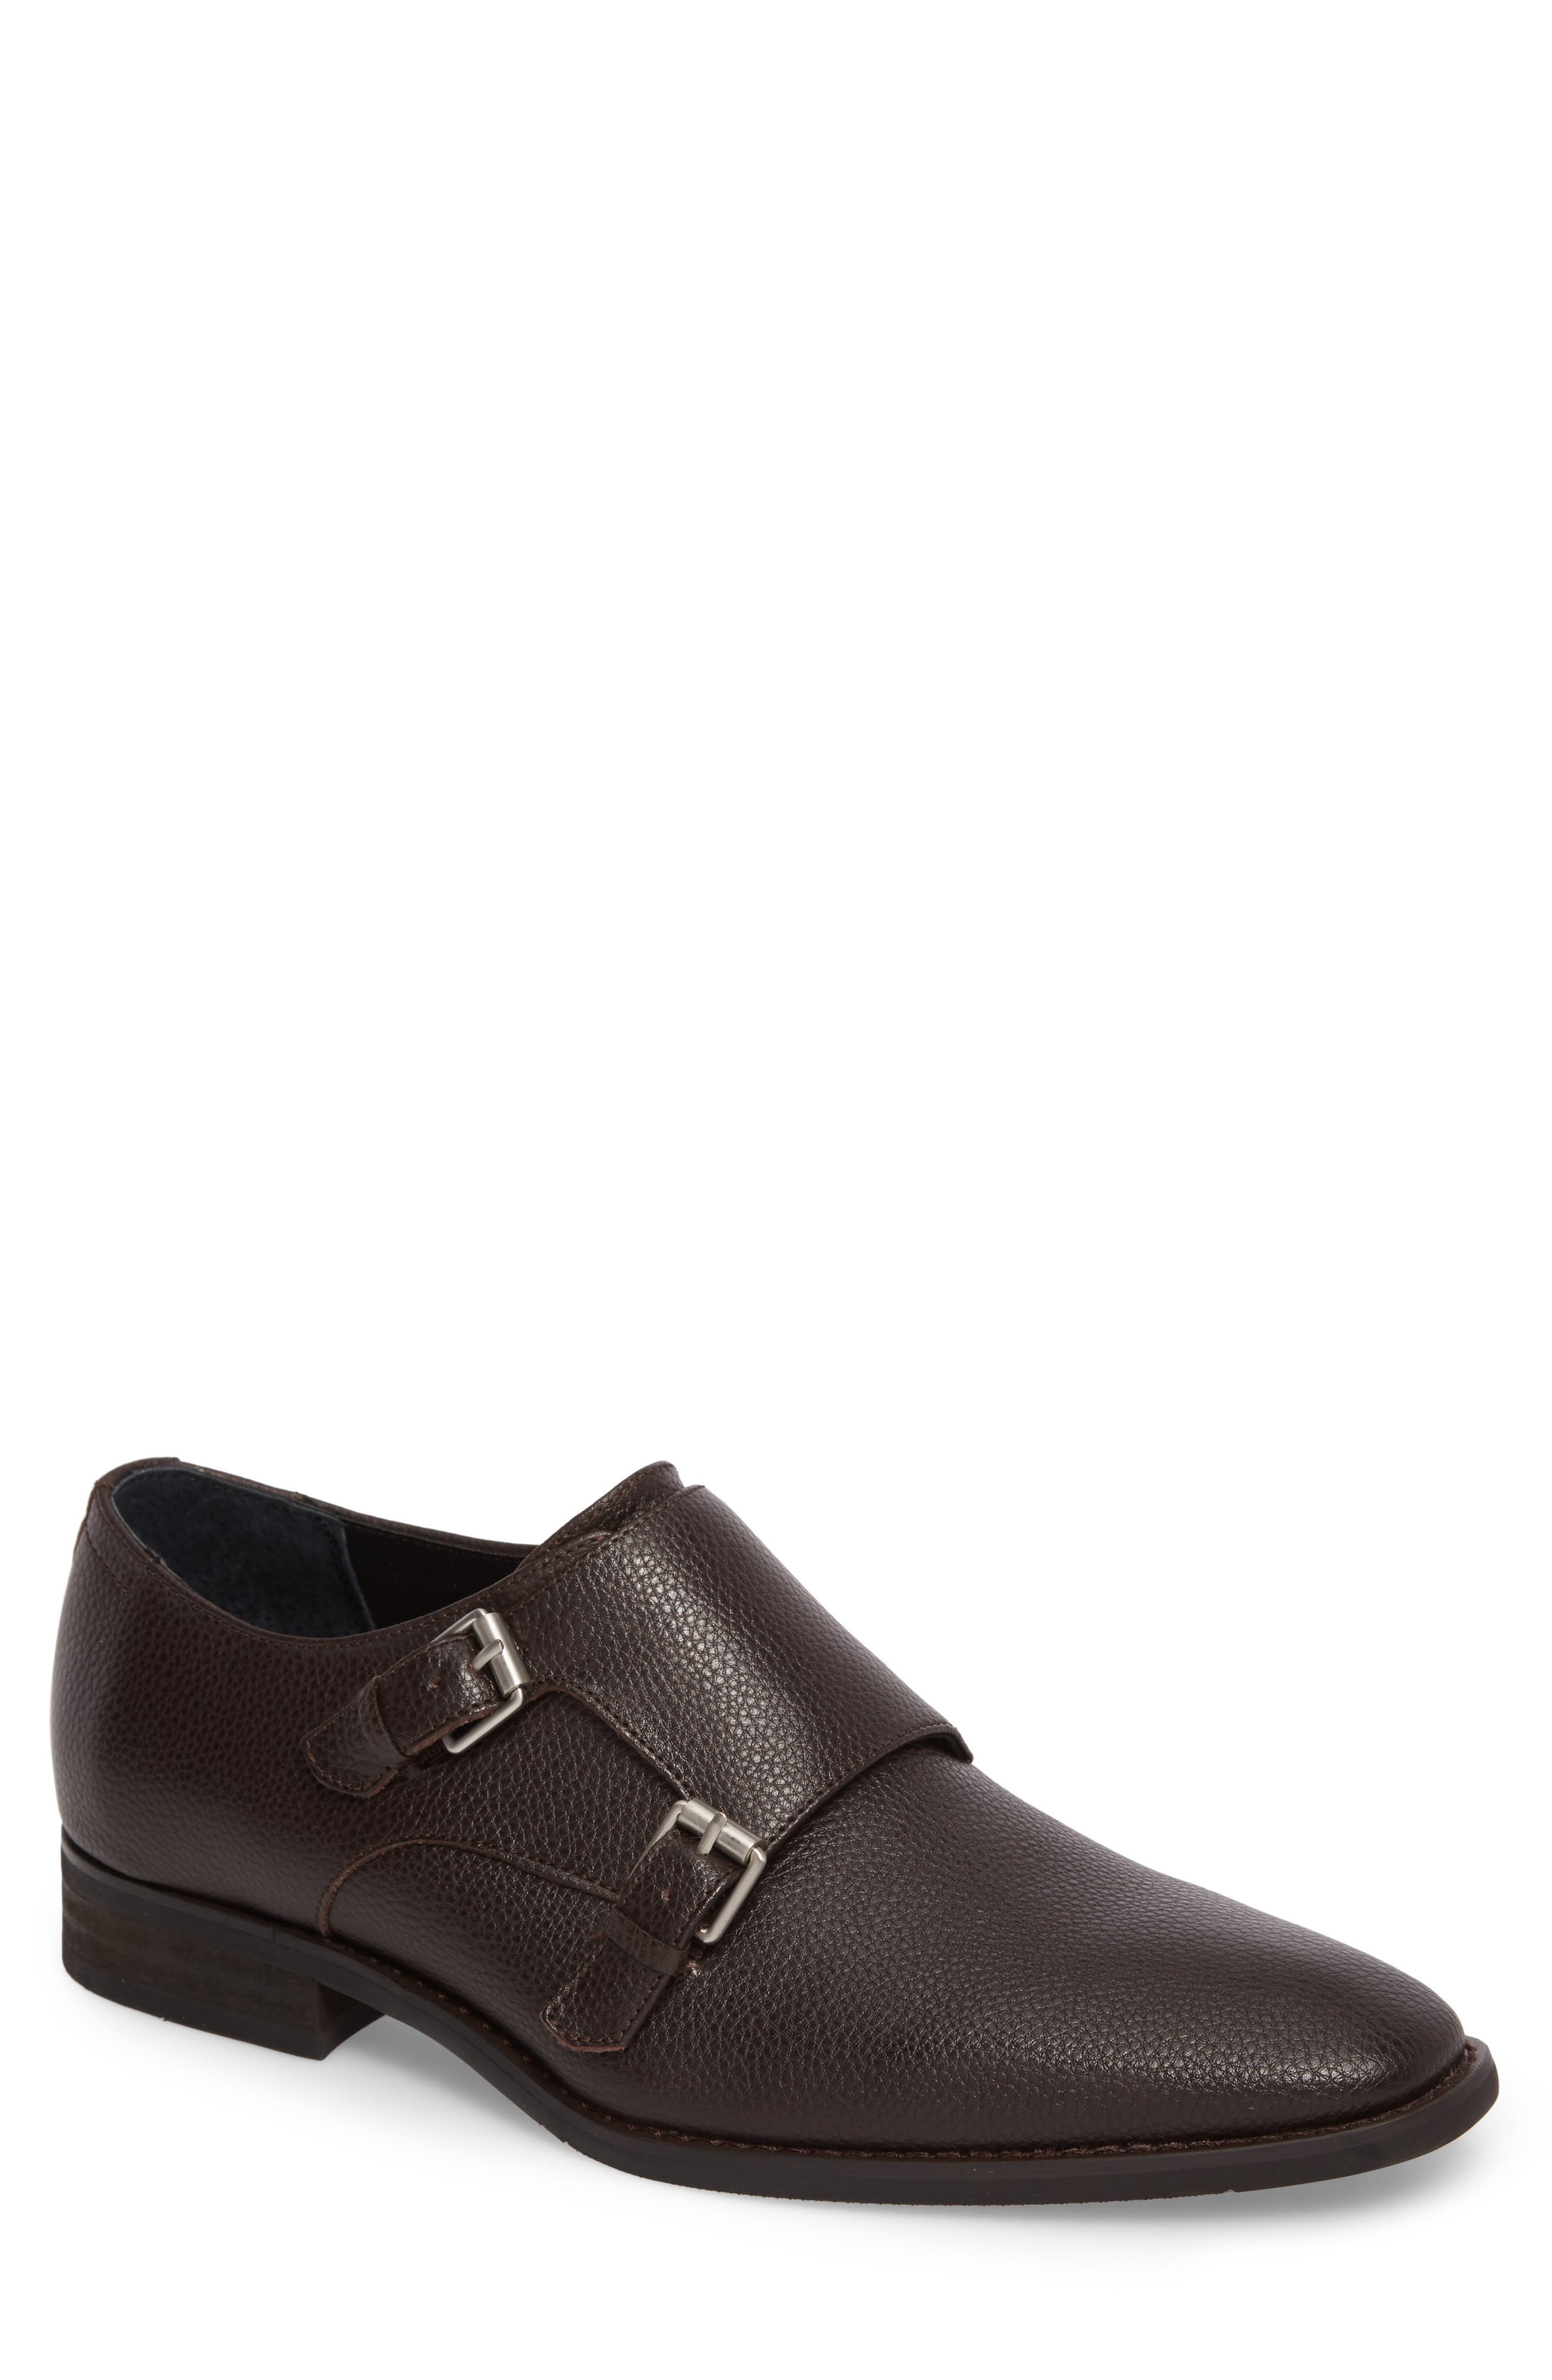 Robbie Double Monk Strap Shoe,                         Main,                         color, Dark Brown Leather